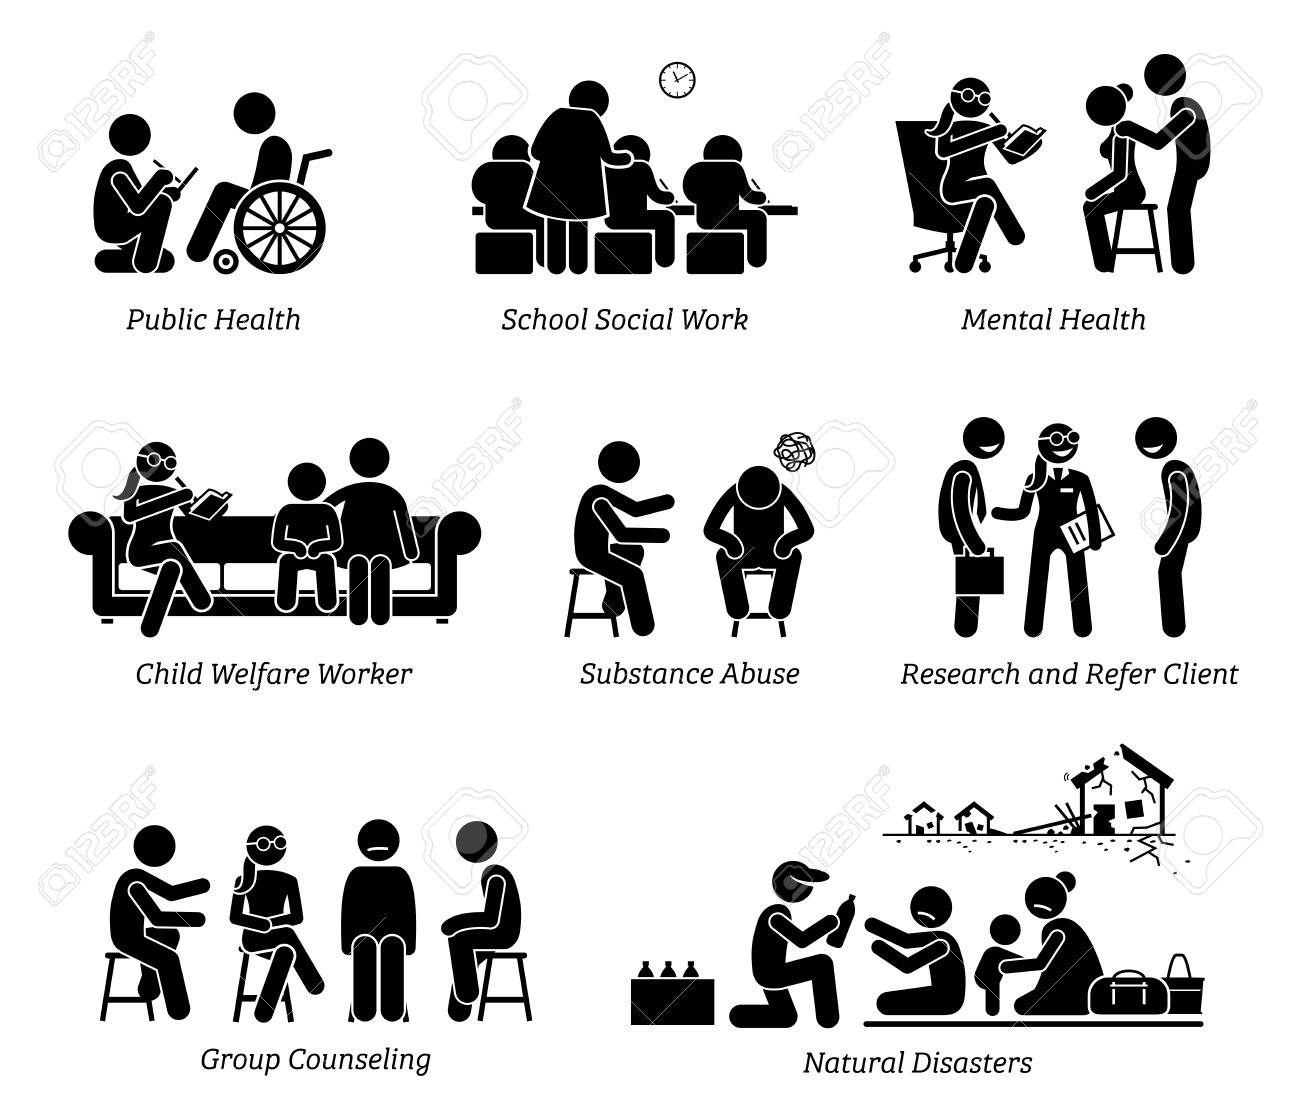 Social Workers Stick Figure Pictogram Icons. Illustrations depict social worker on public health, school, child welfare, substance abuse, research refer client, natural disaster and group counseling. - 89056989